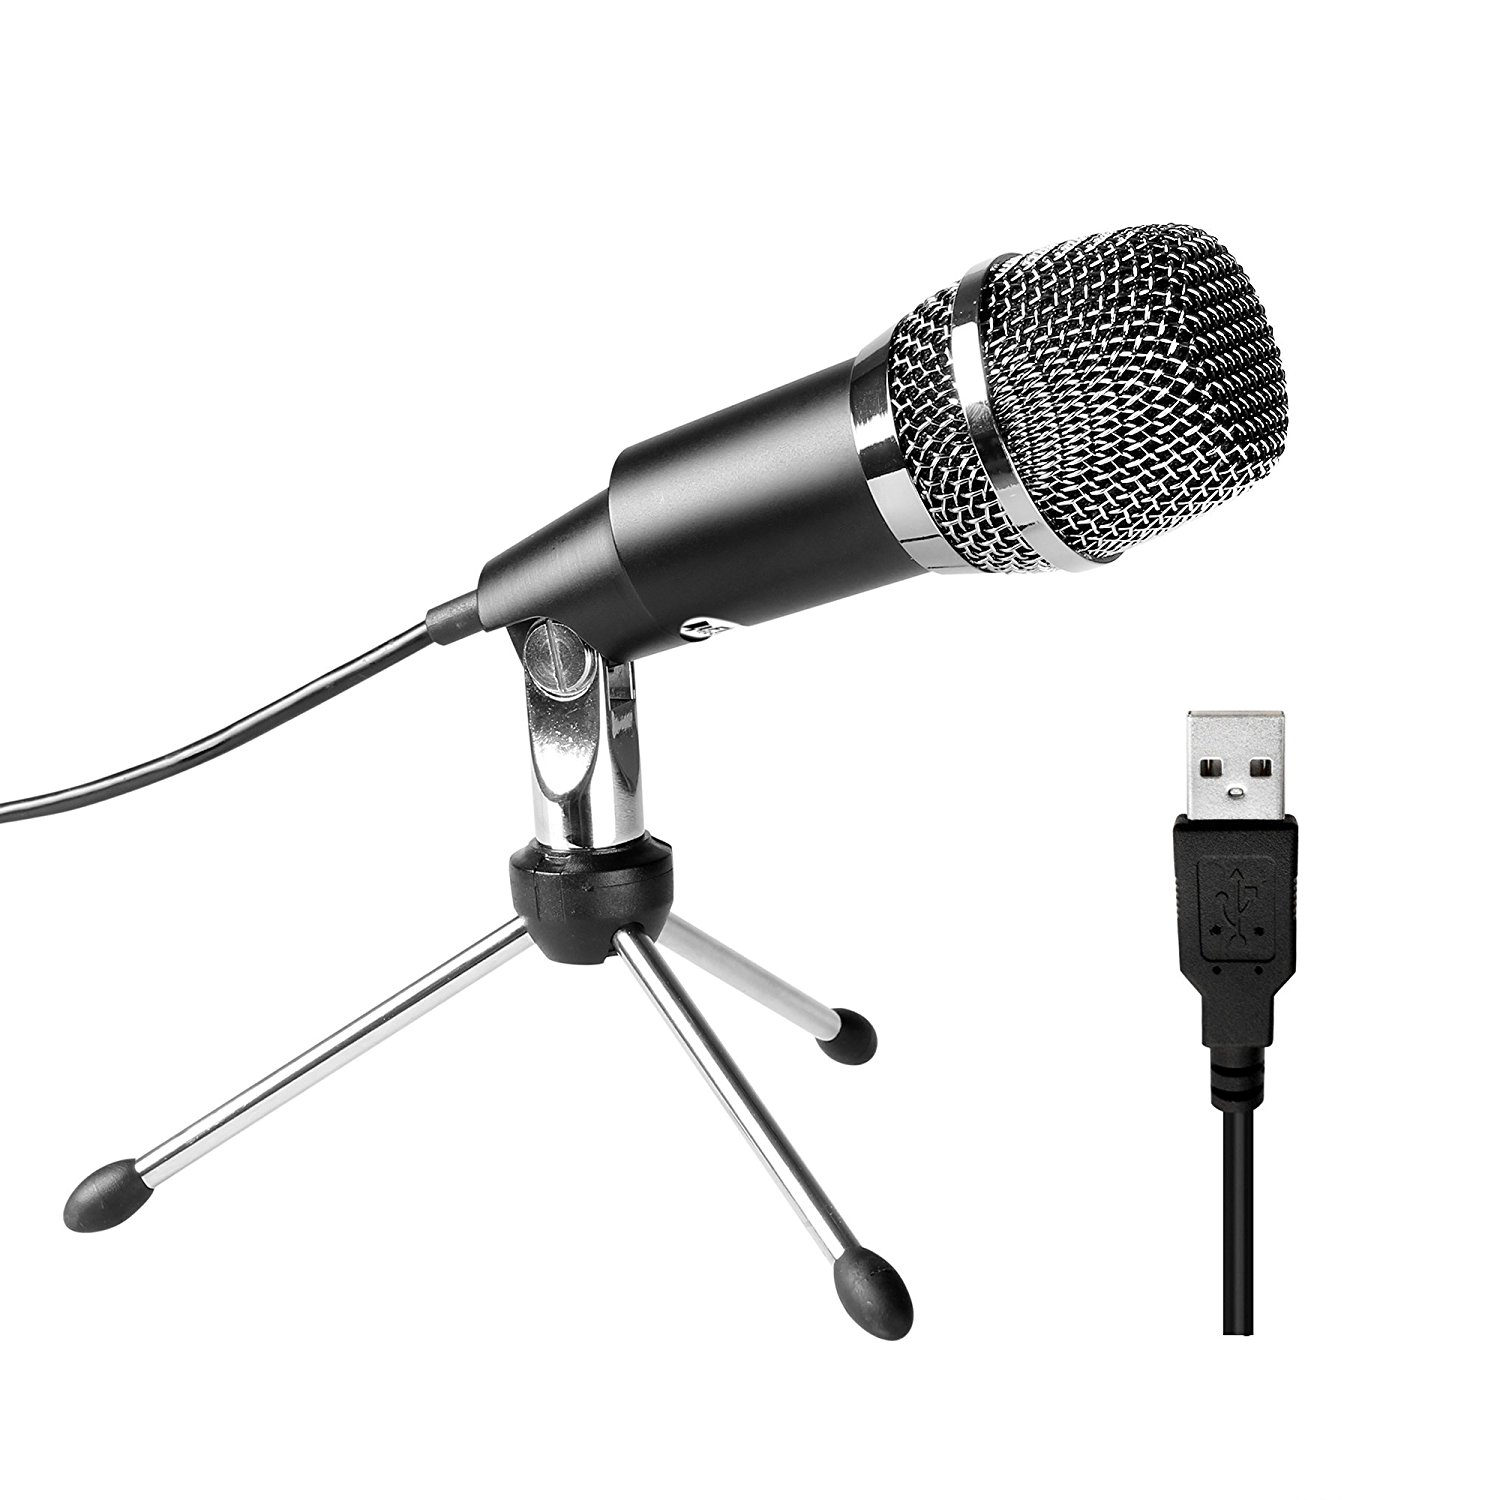 Top 10 Best USB Microphones in 2020